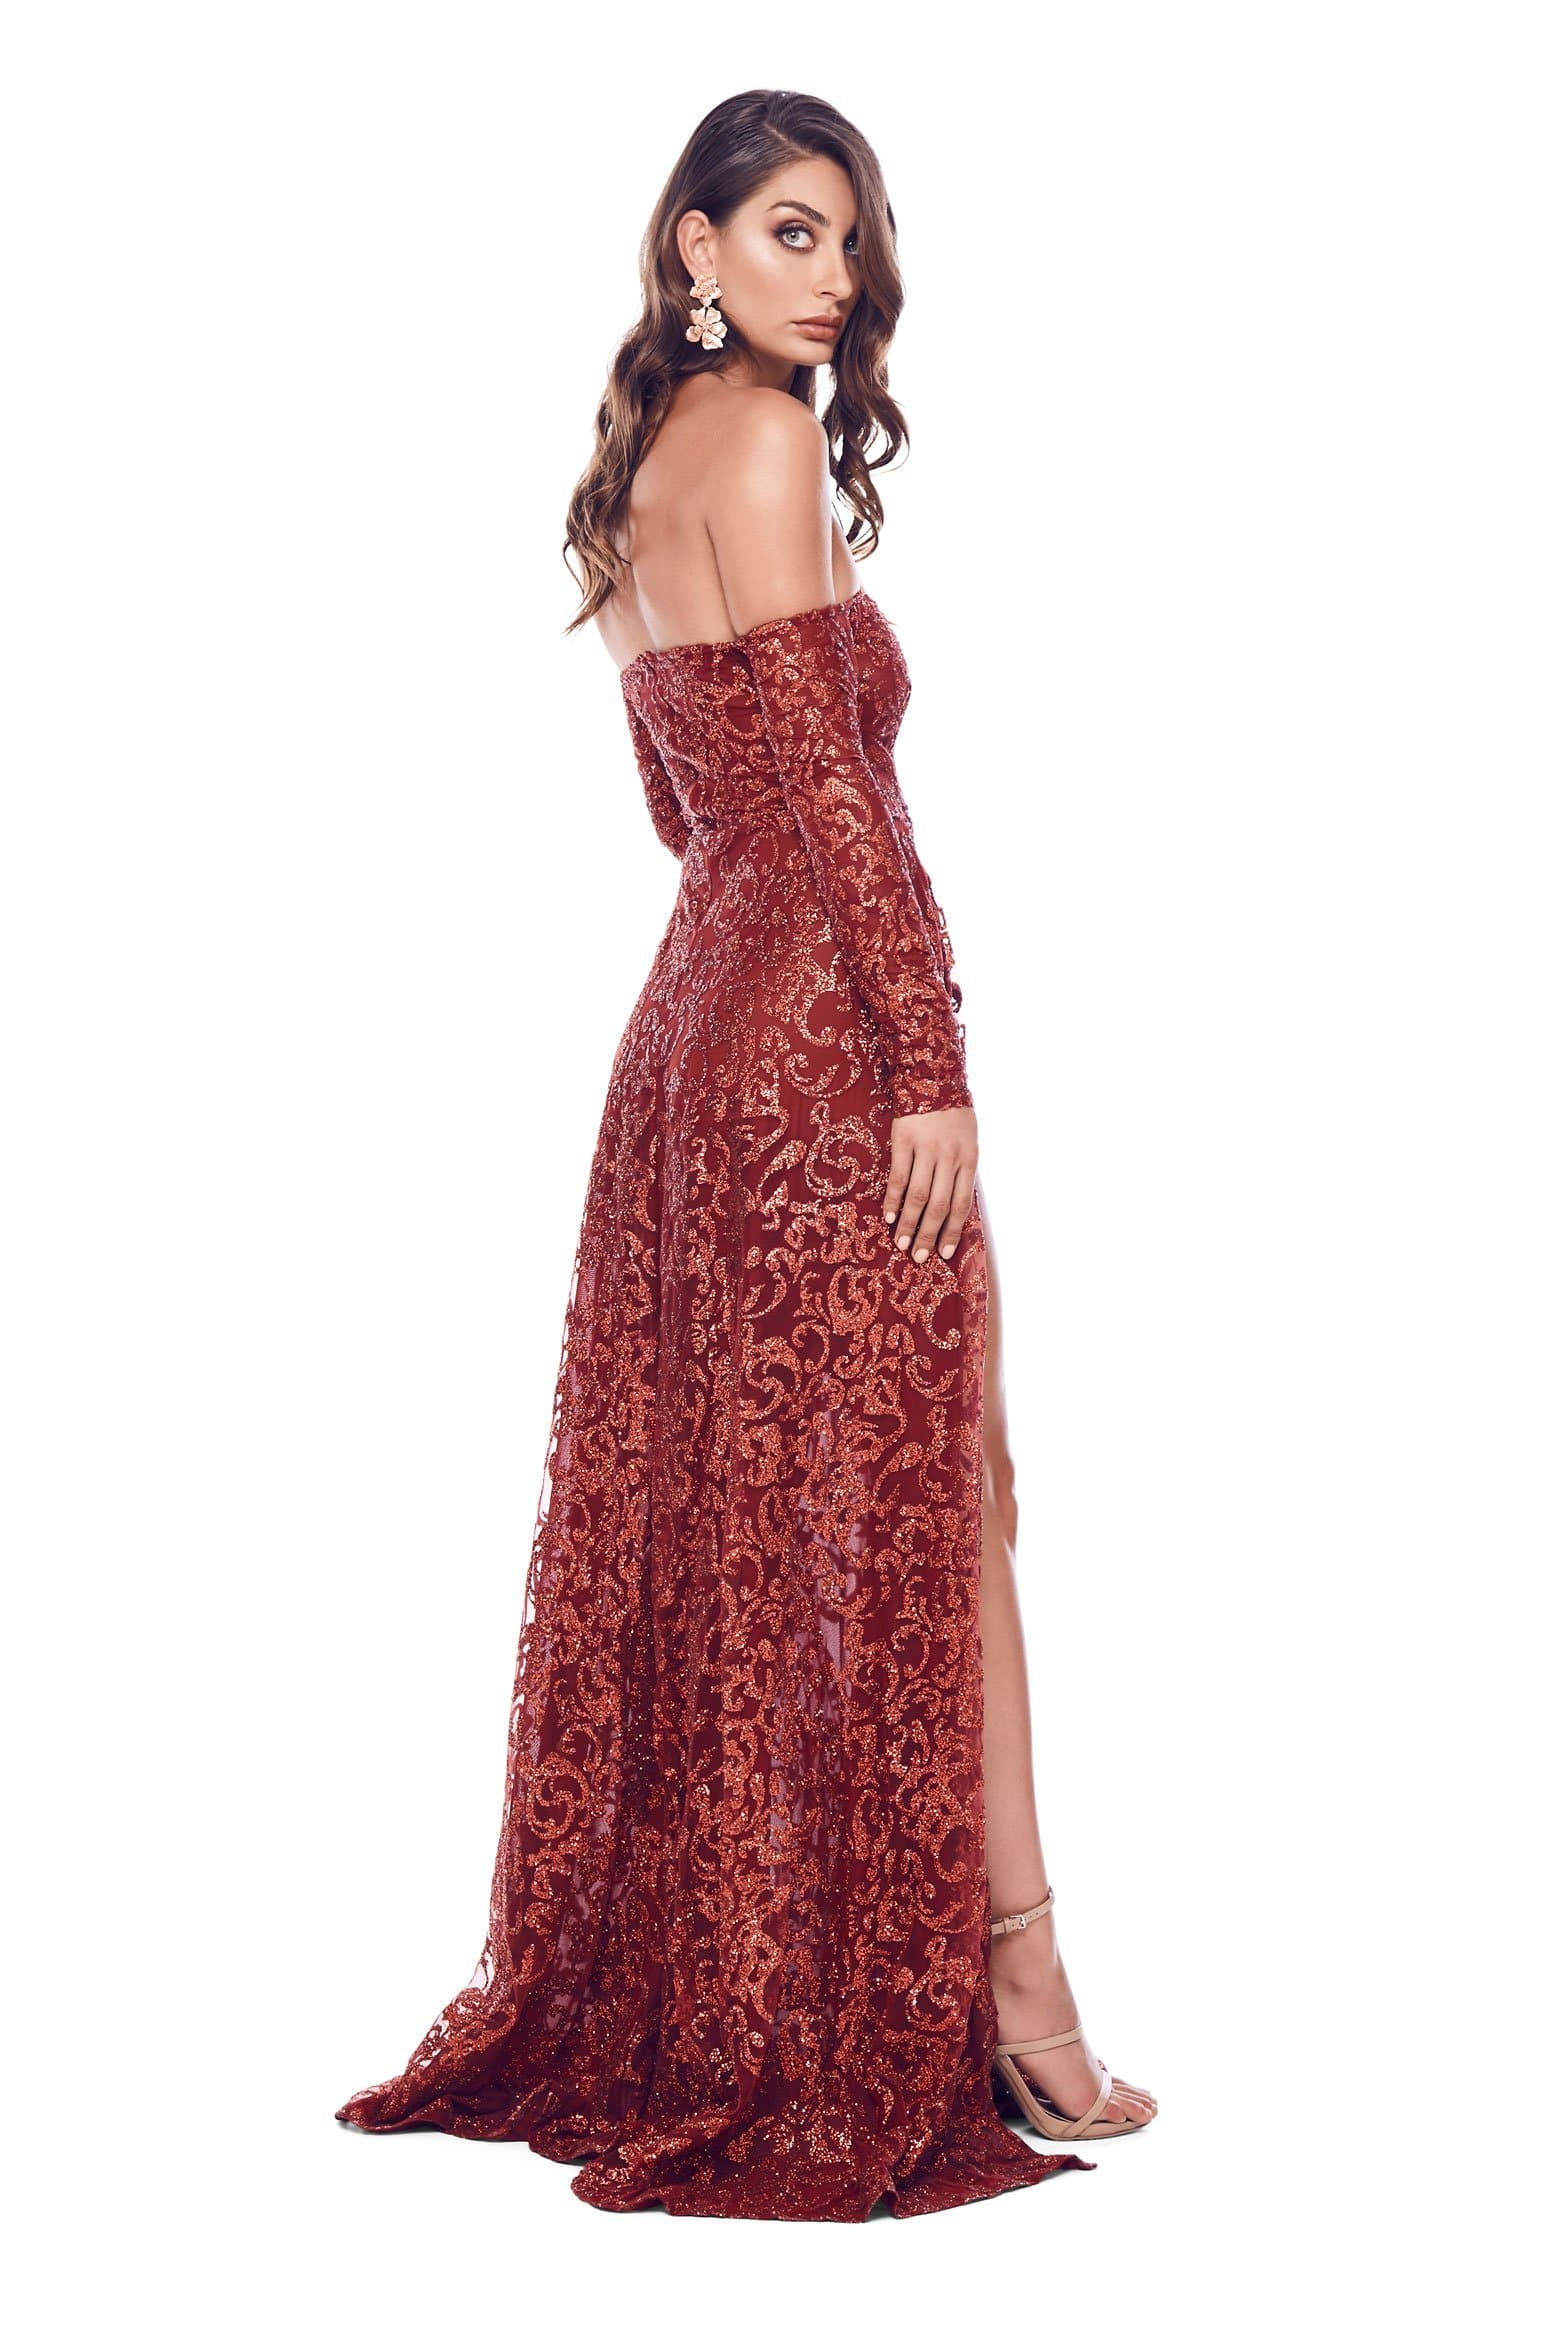 Flame - Wine Red Glitter Gown with Long Off-Shoulder Sleeves 94ada6153